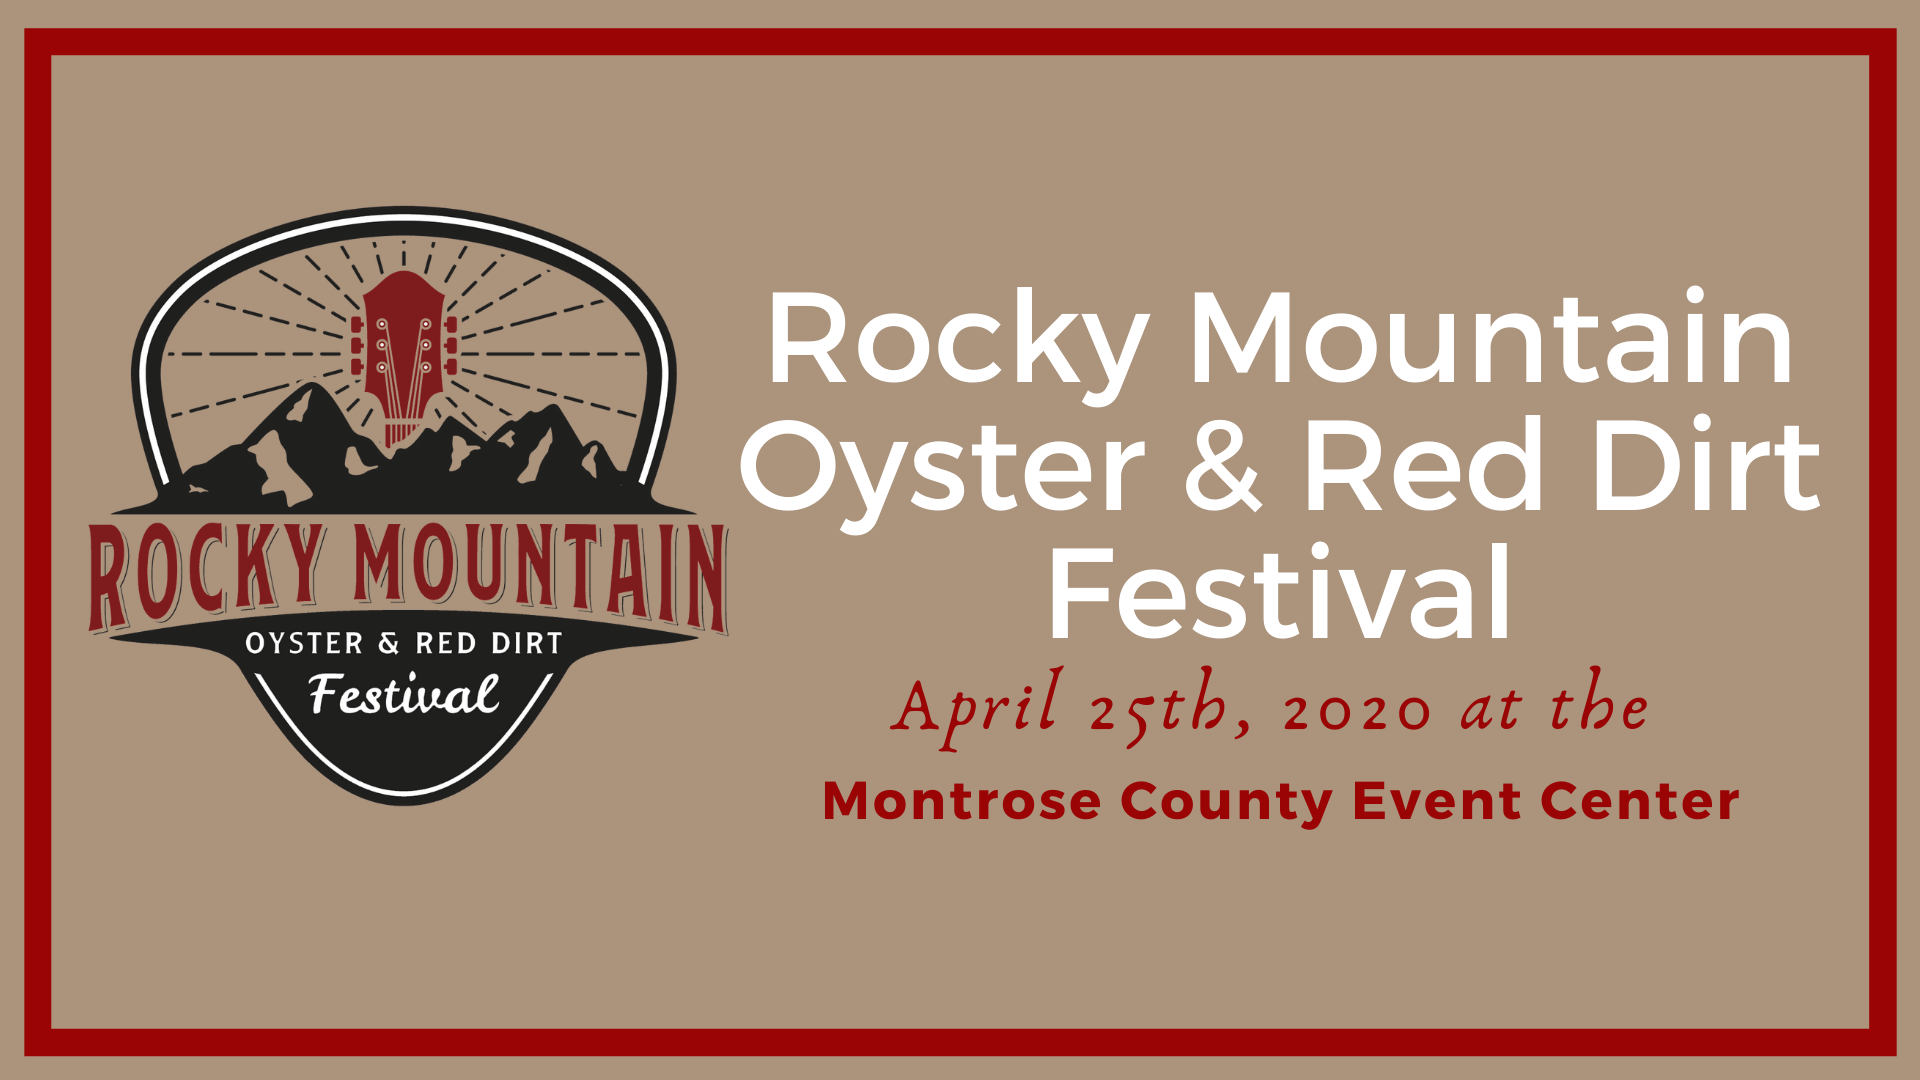 Rocky Mountain Oyster and Red Dirt Festival at Montrose County Event Center